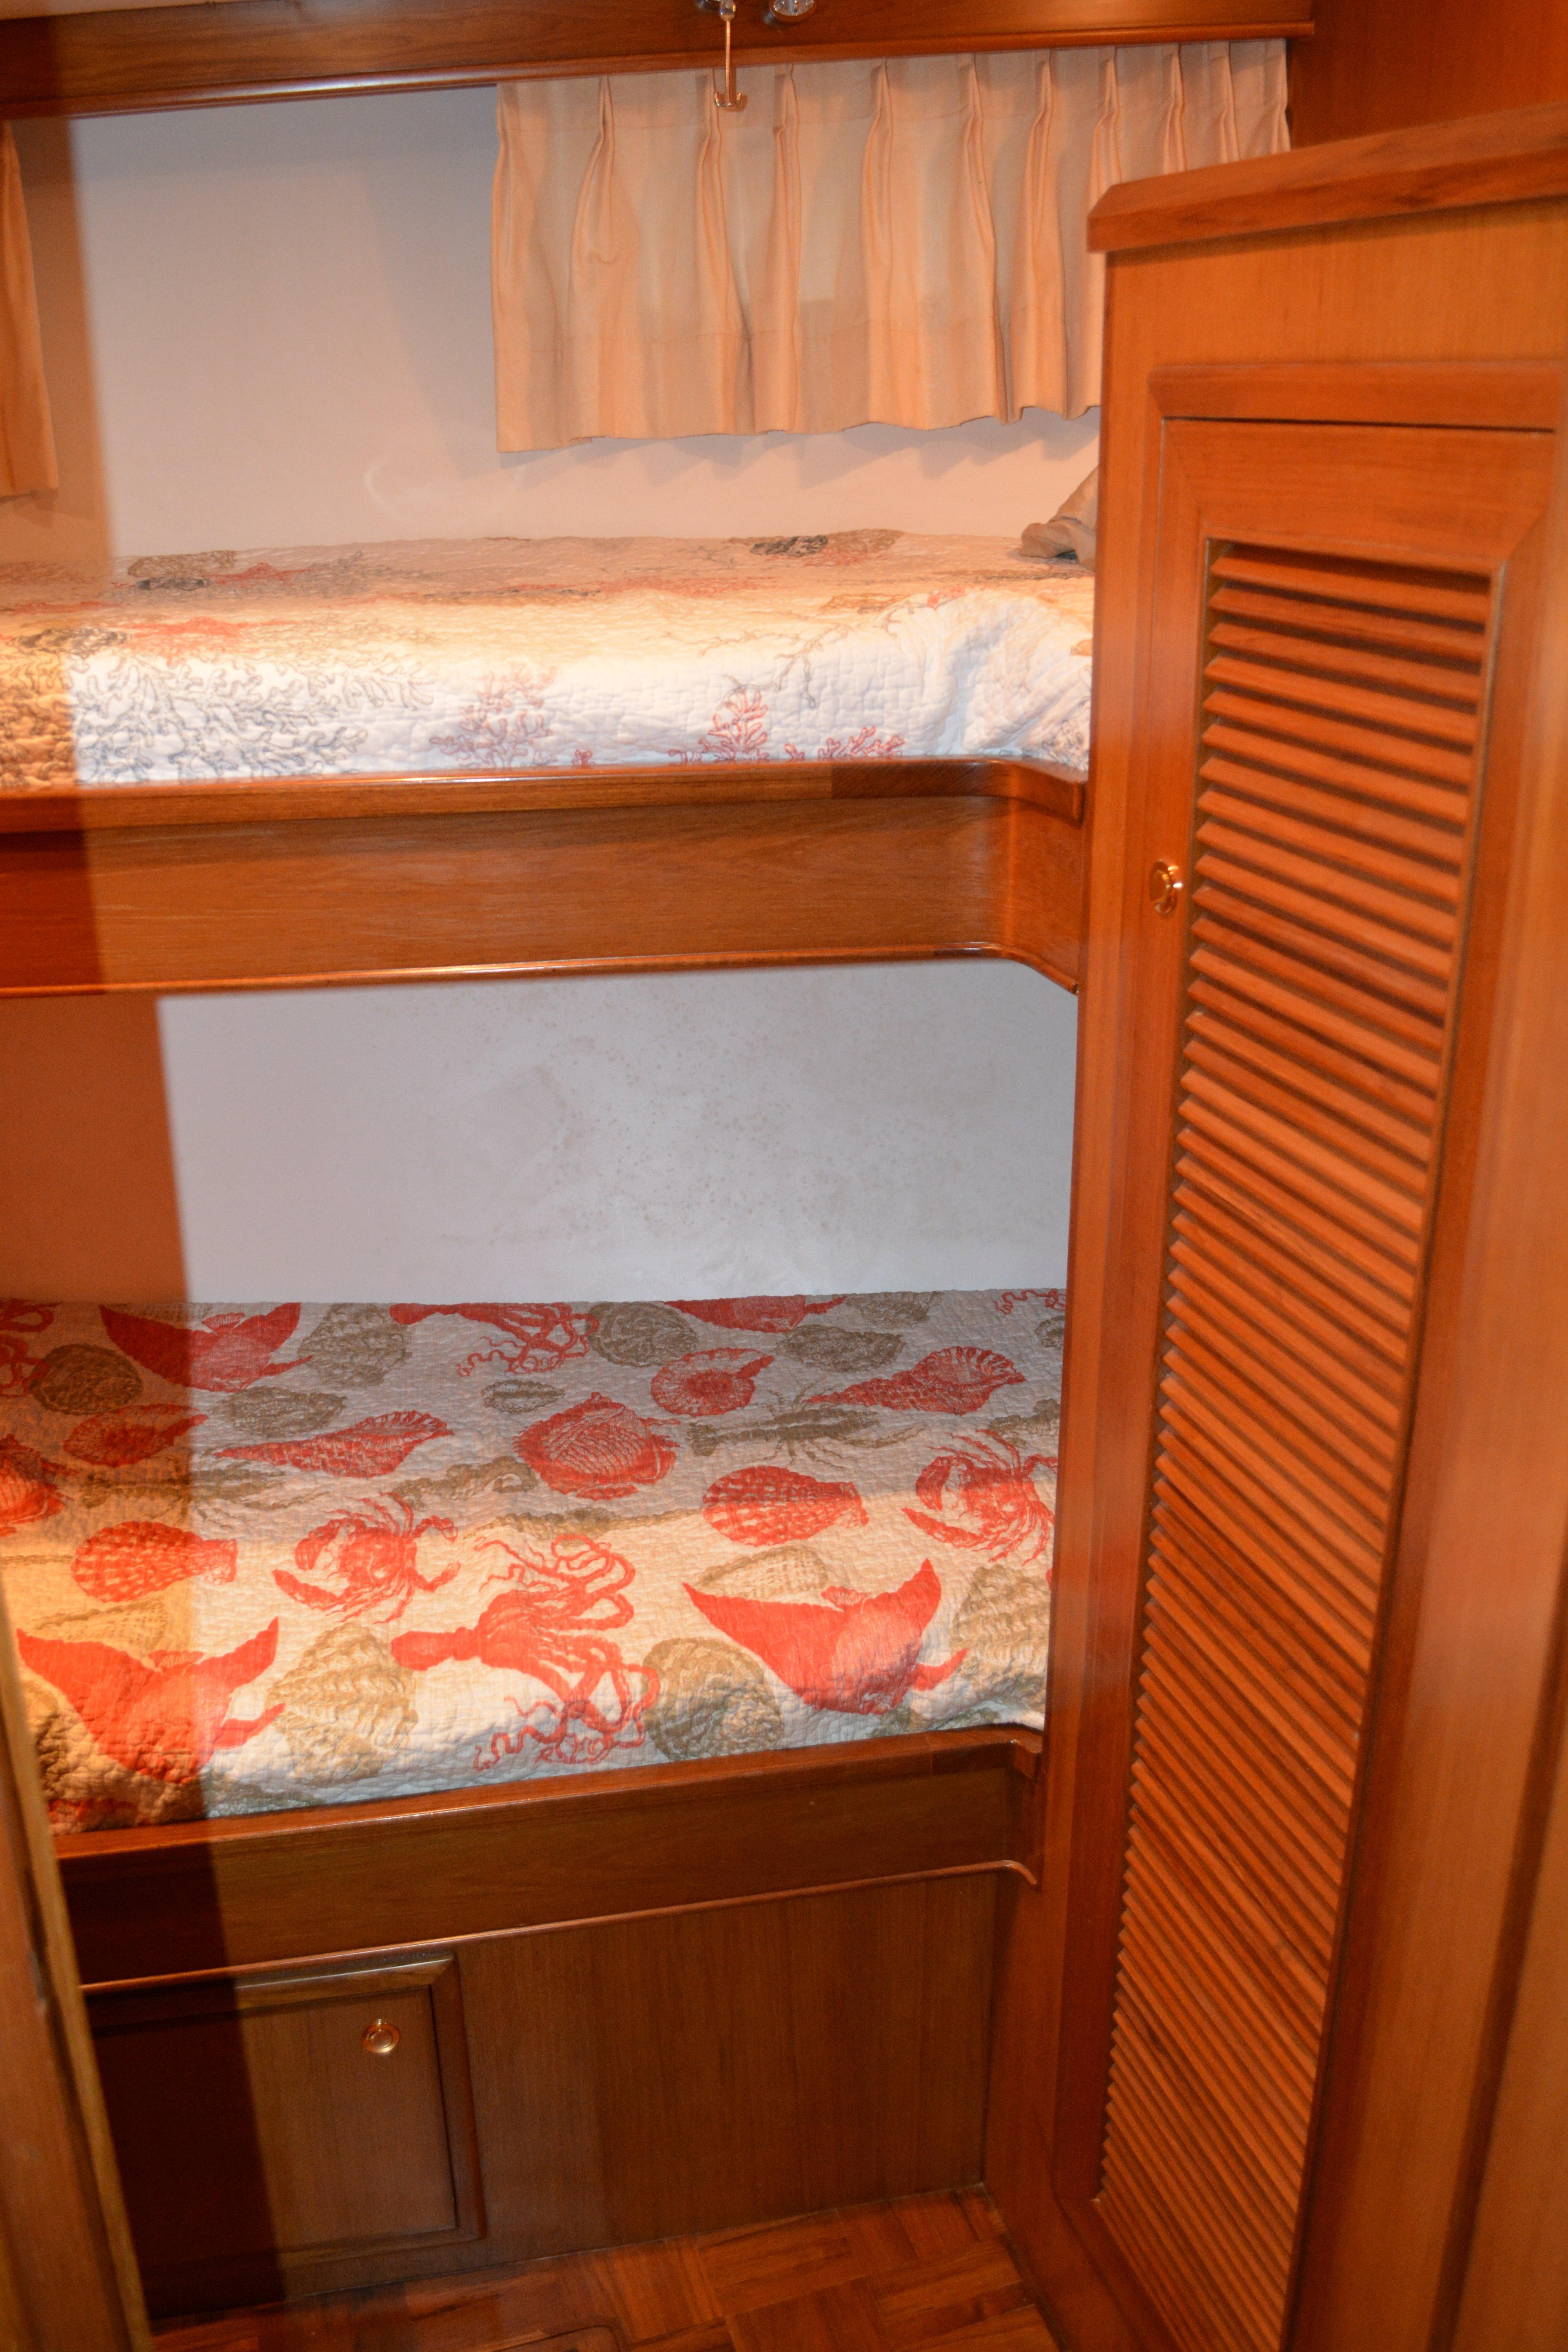 3rd Stateroom